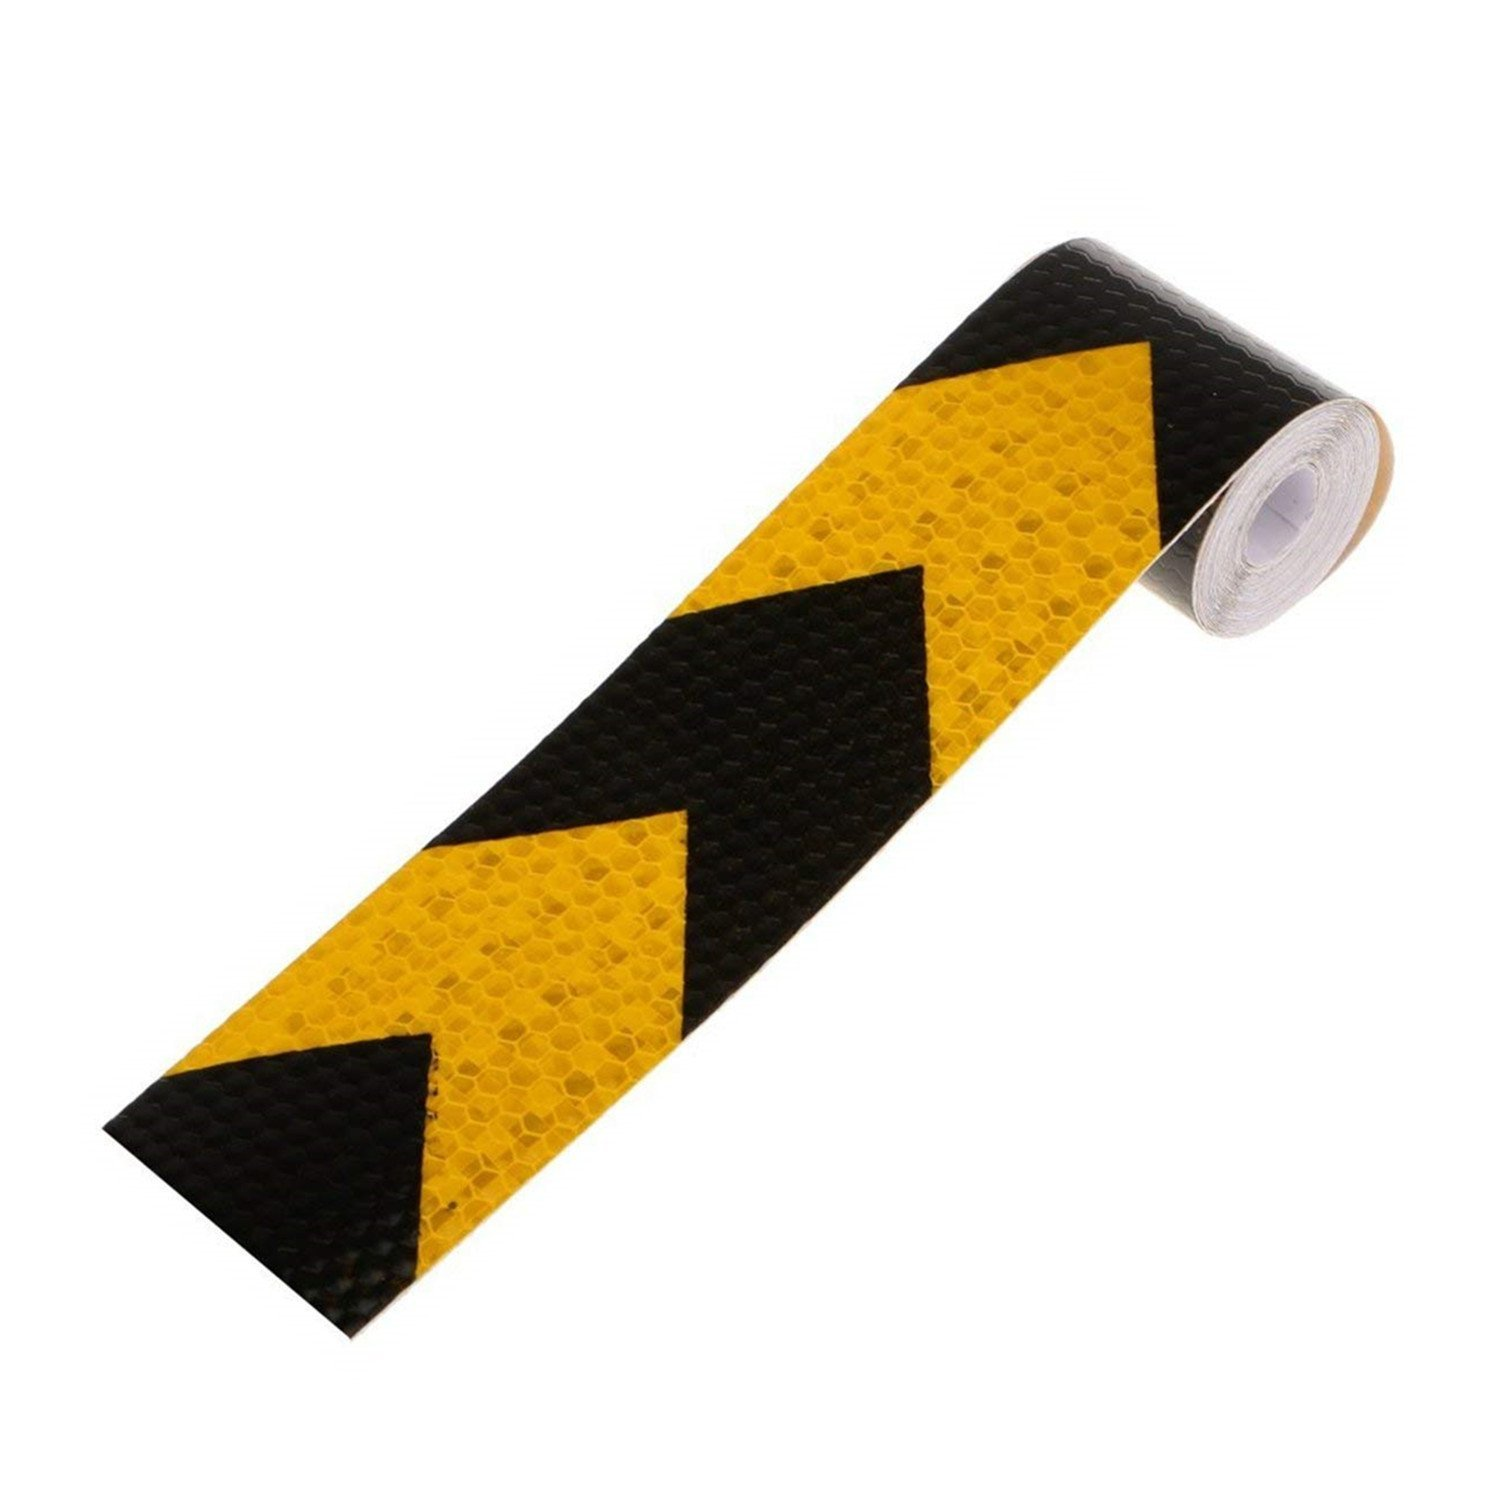 Outdoor, Not Easy Leaving Adhesive Residue High Traction Indoor Best Grip Safety Friction 15cm x 5m Tread Step Anti Slip Tape Abrasive Adhesive for Stairs